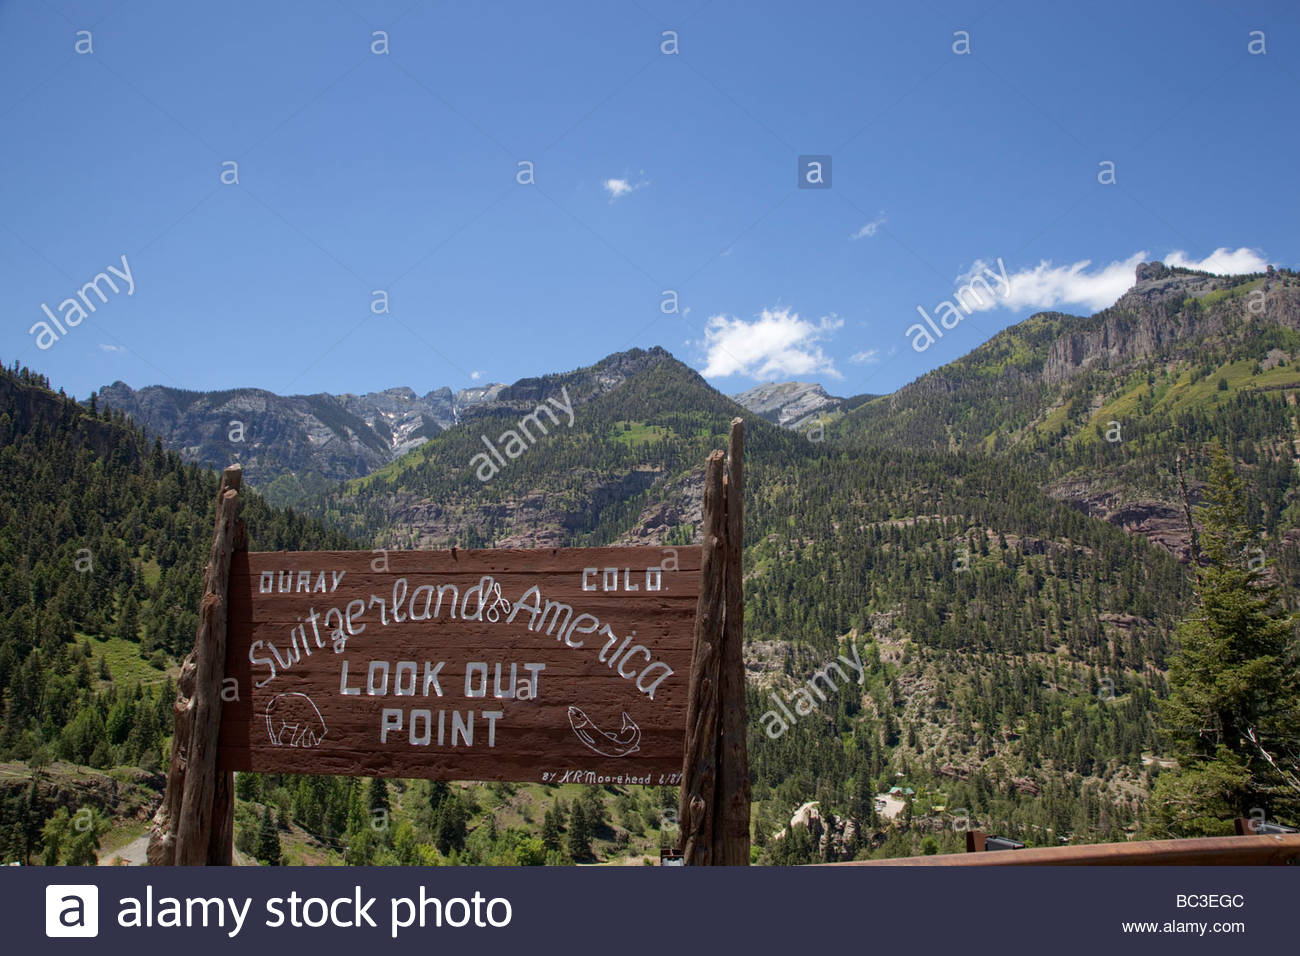 Ouray Colorado Look Out Point Sign - Stock Image